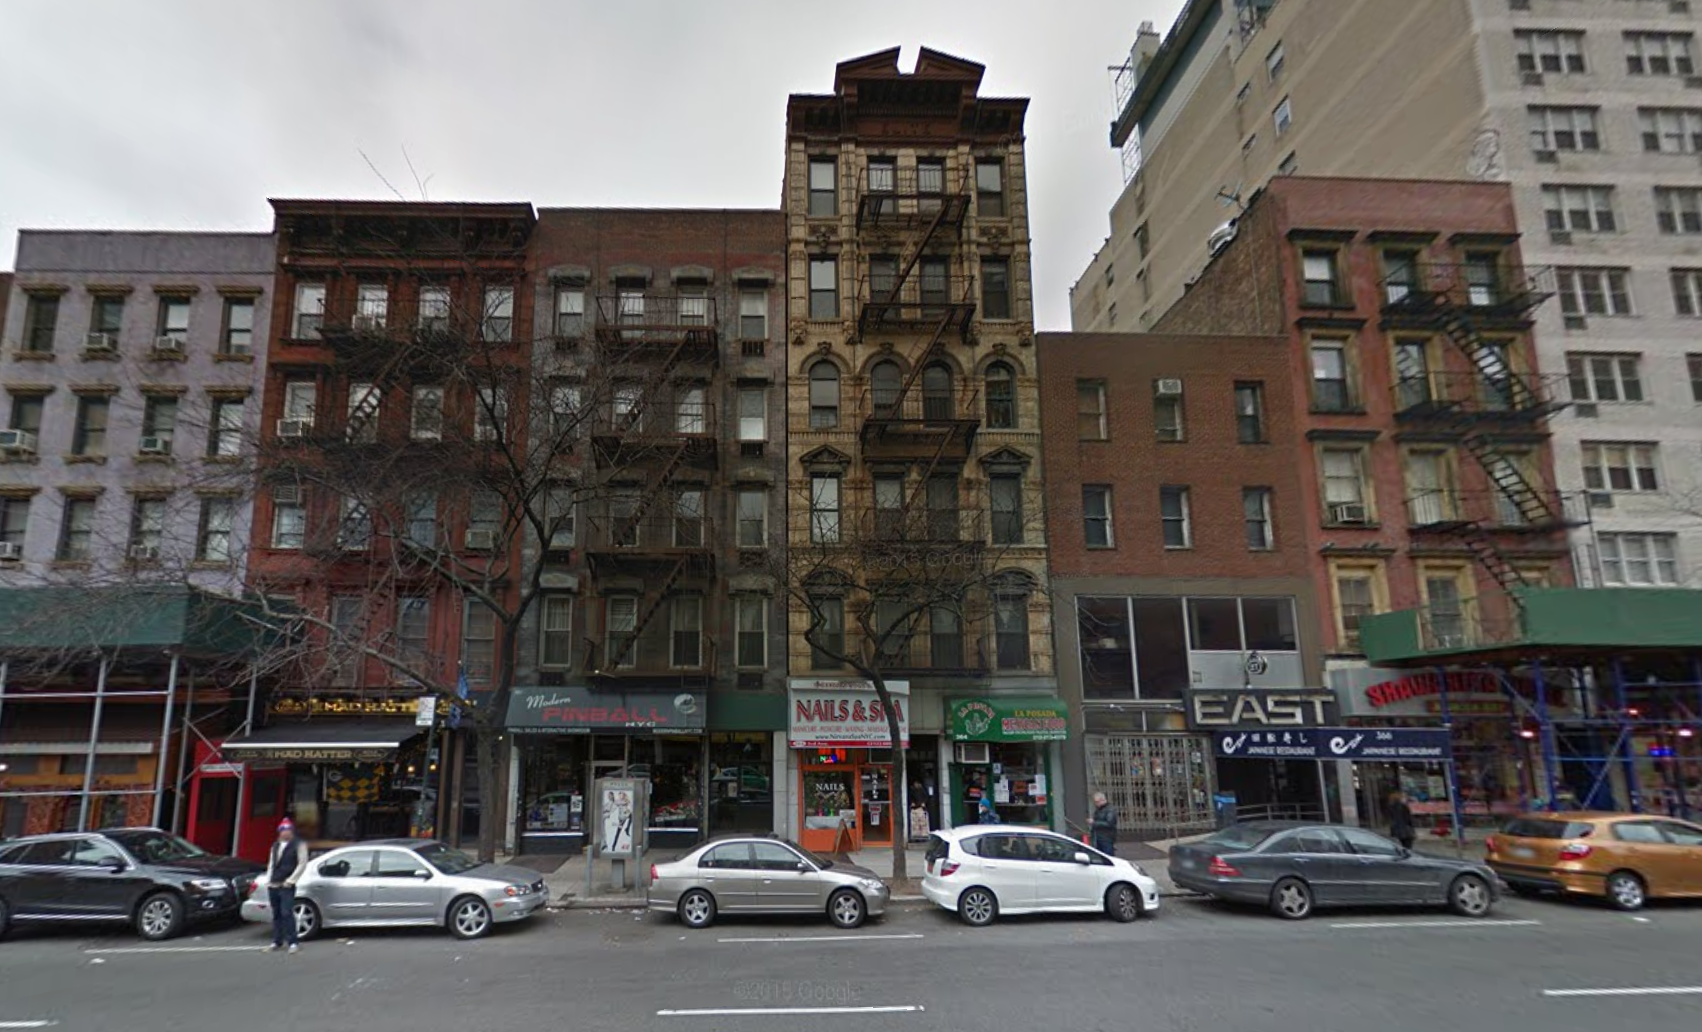 360-368 Third Avenue, image via Google Maps